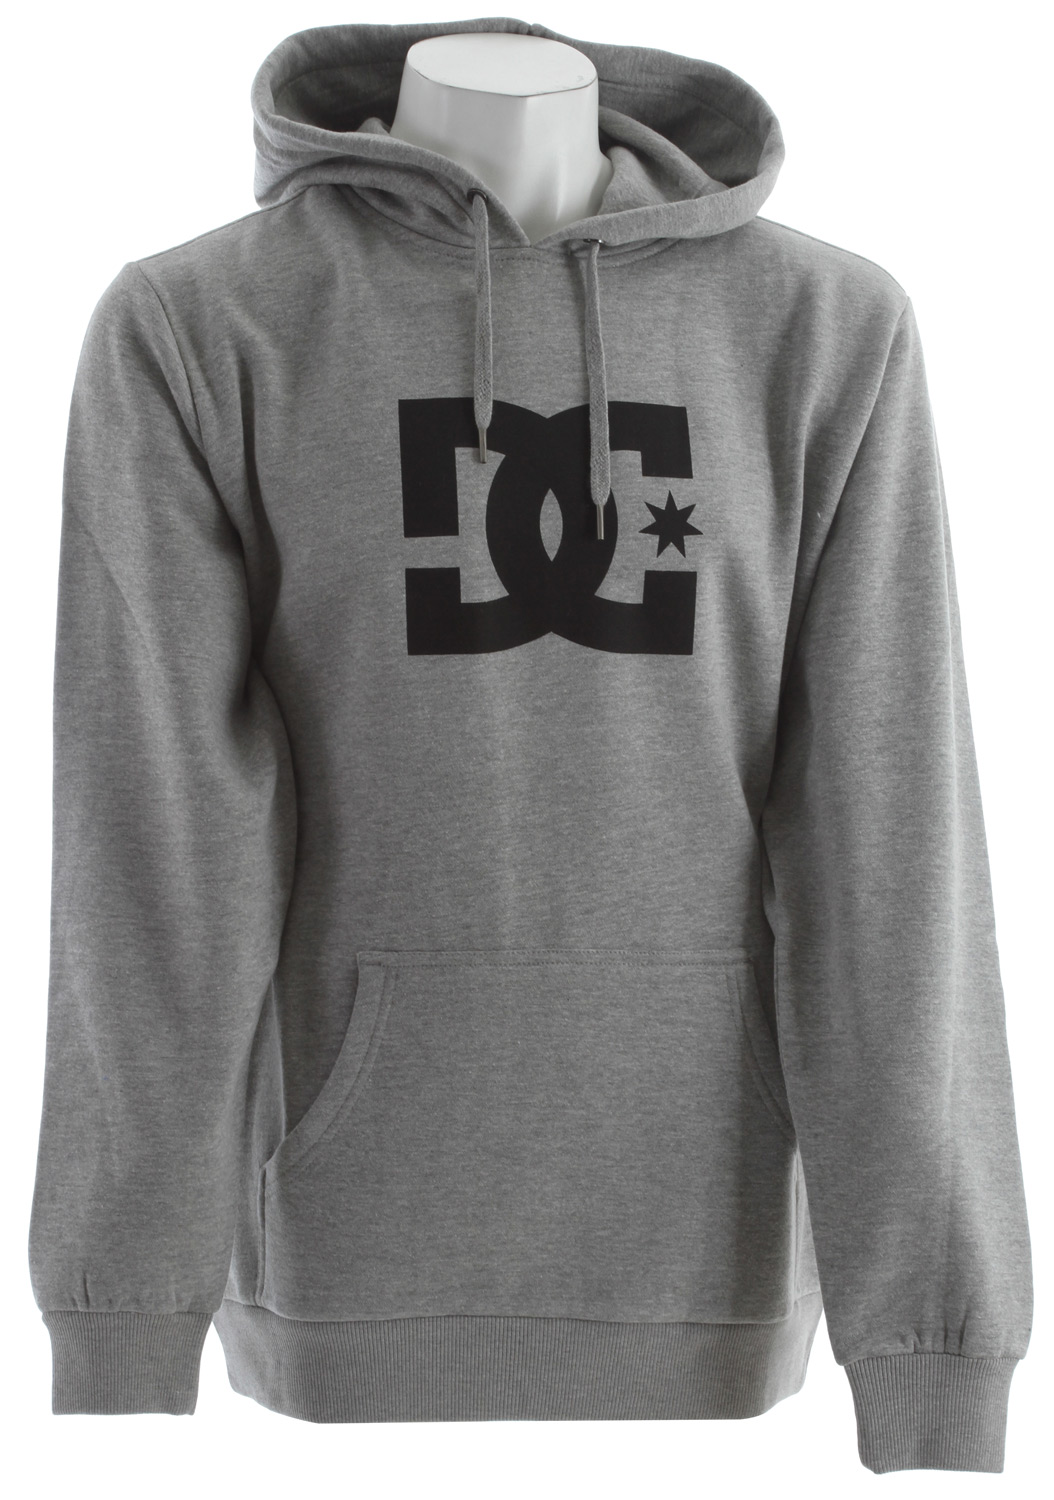 Skateboard Key Features of the DC Star PH1 Hoodie: Standard Fleece Pullover with Soft Hand Plastisol Print at Chest Custom Trim Package 80% Cotton, 20% Polyester - $50.00